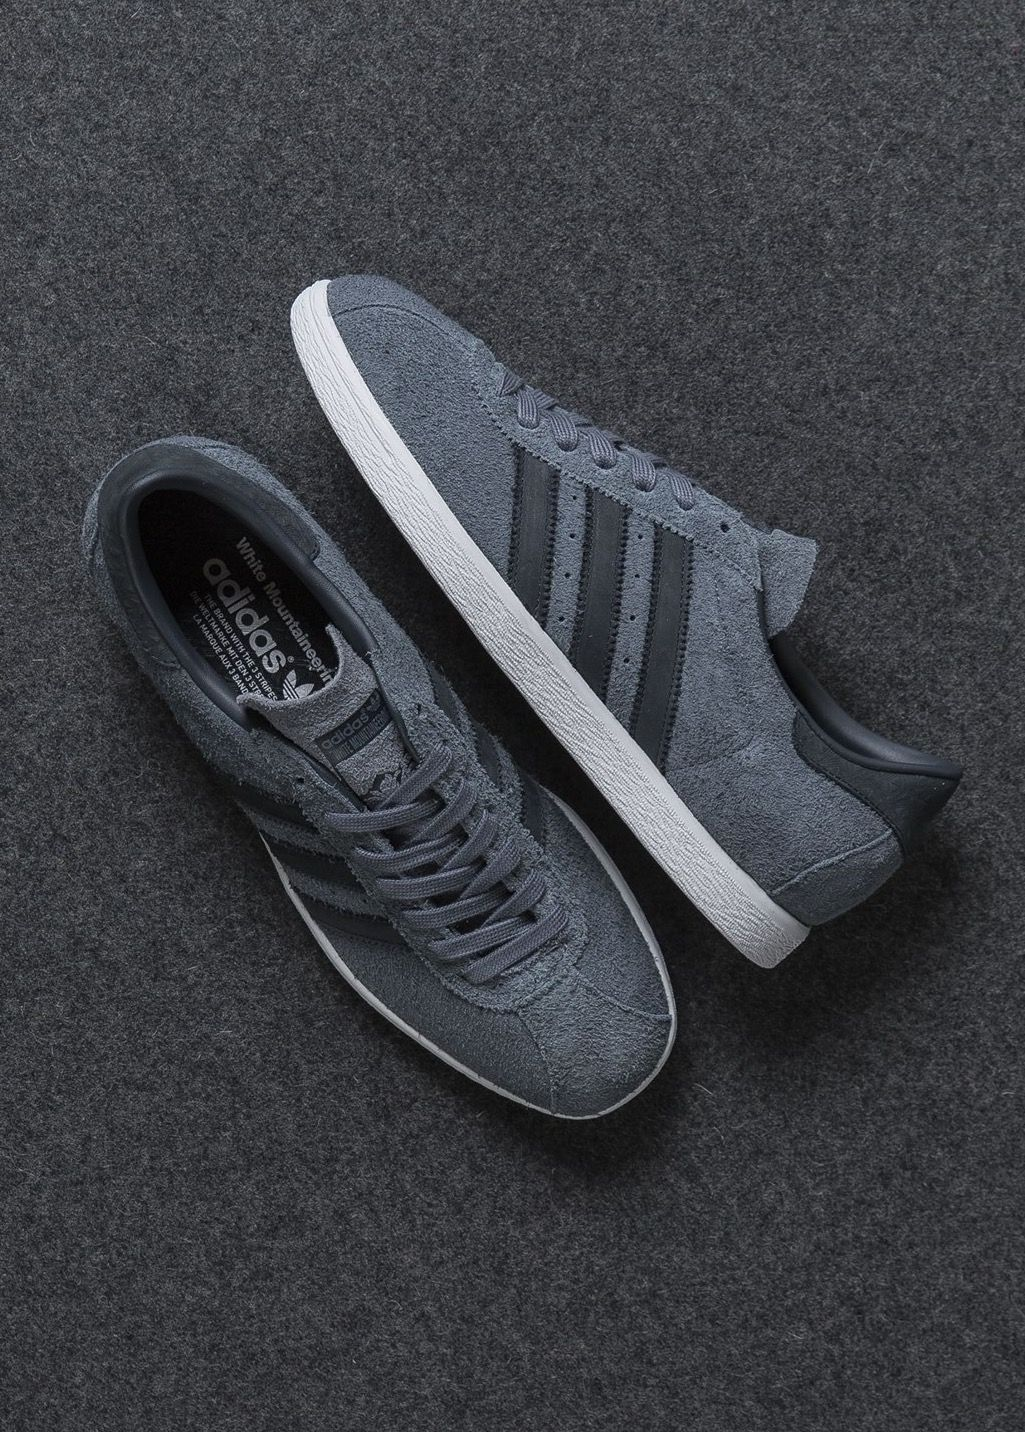 the latest cce9f 85635 White Mountaineering x adidas Originals Tobacco